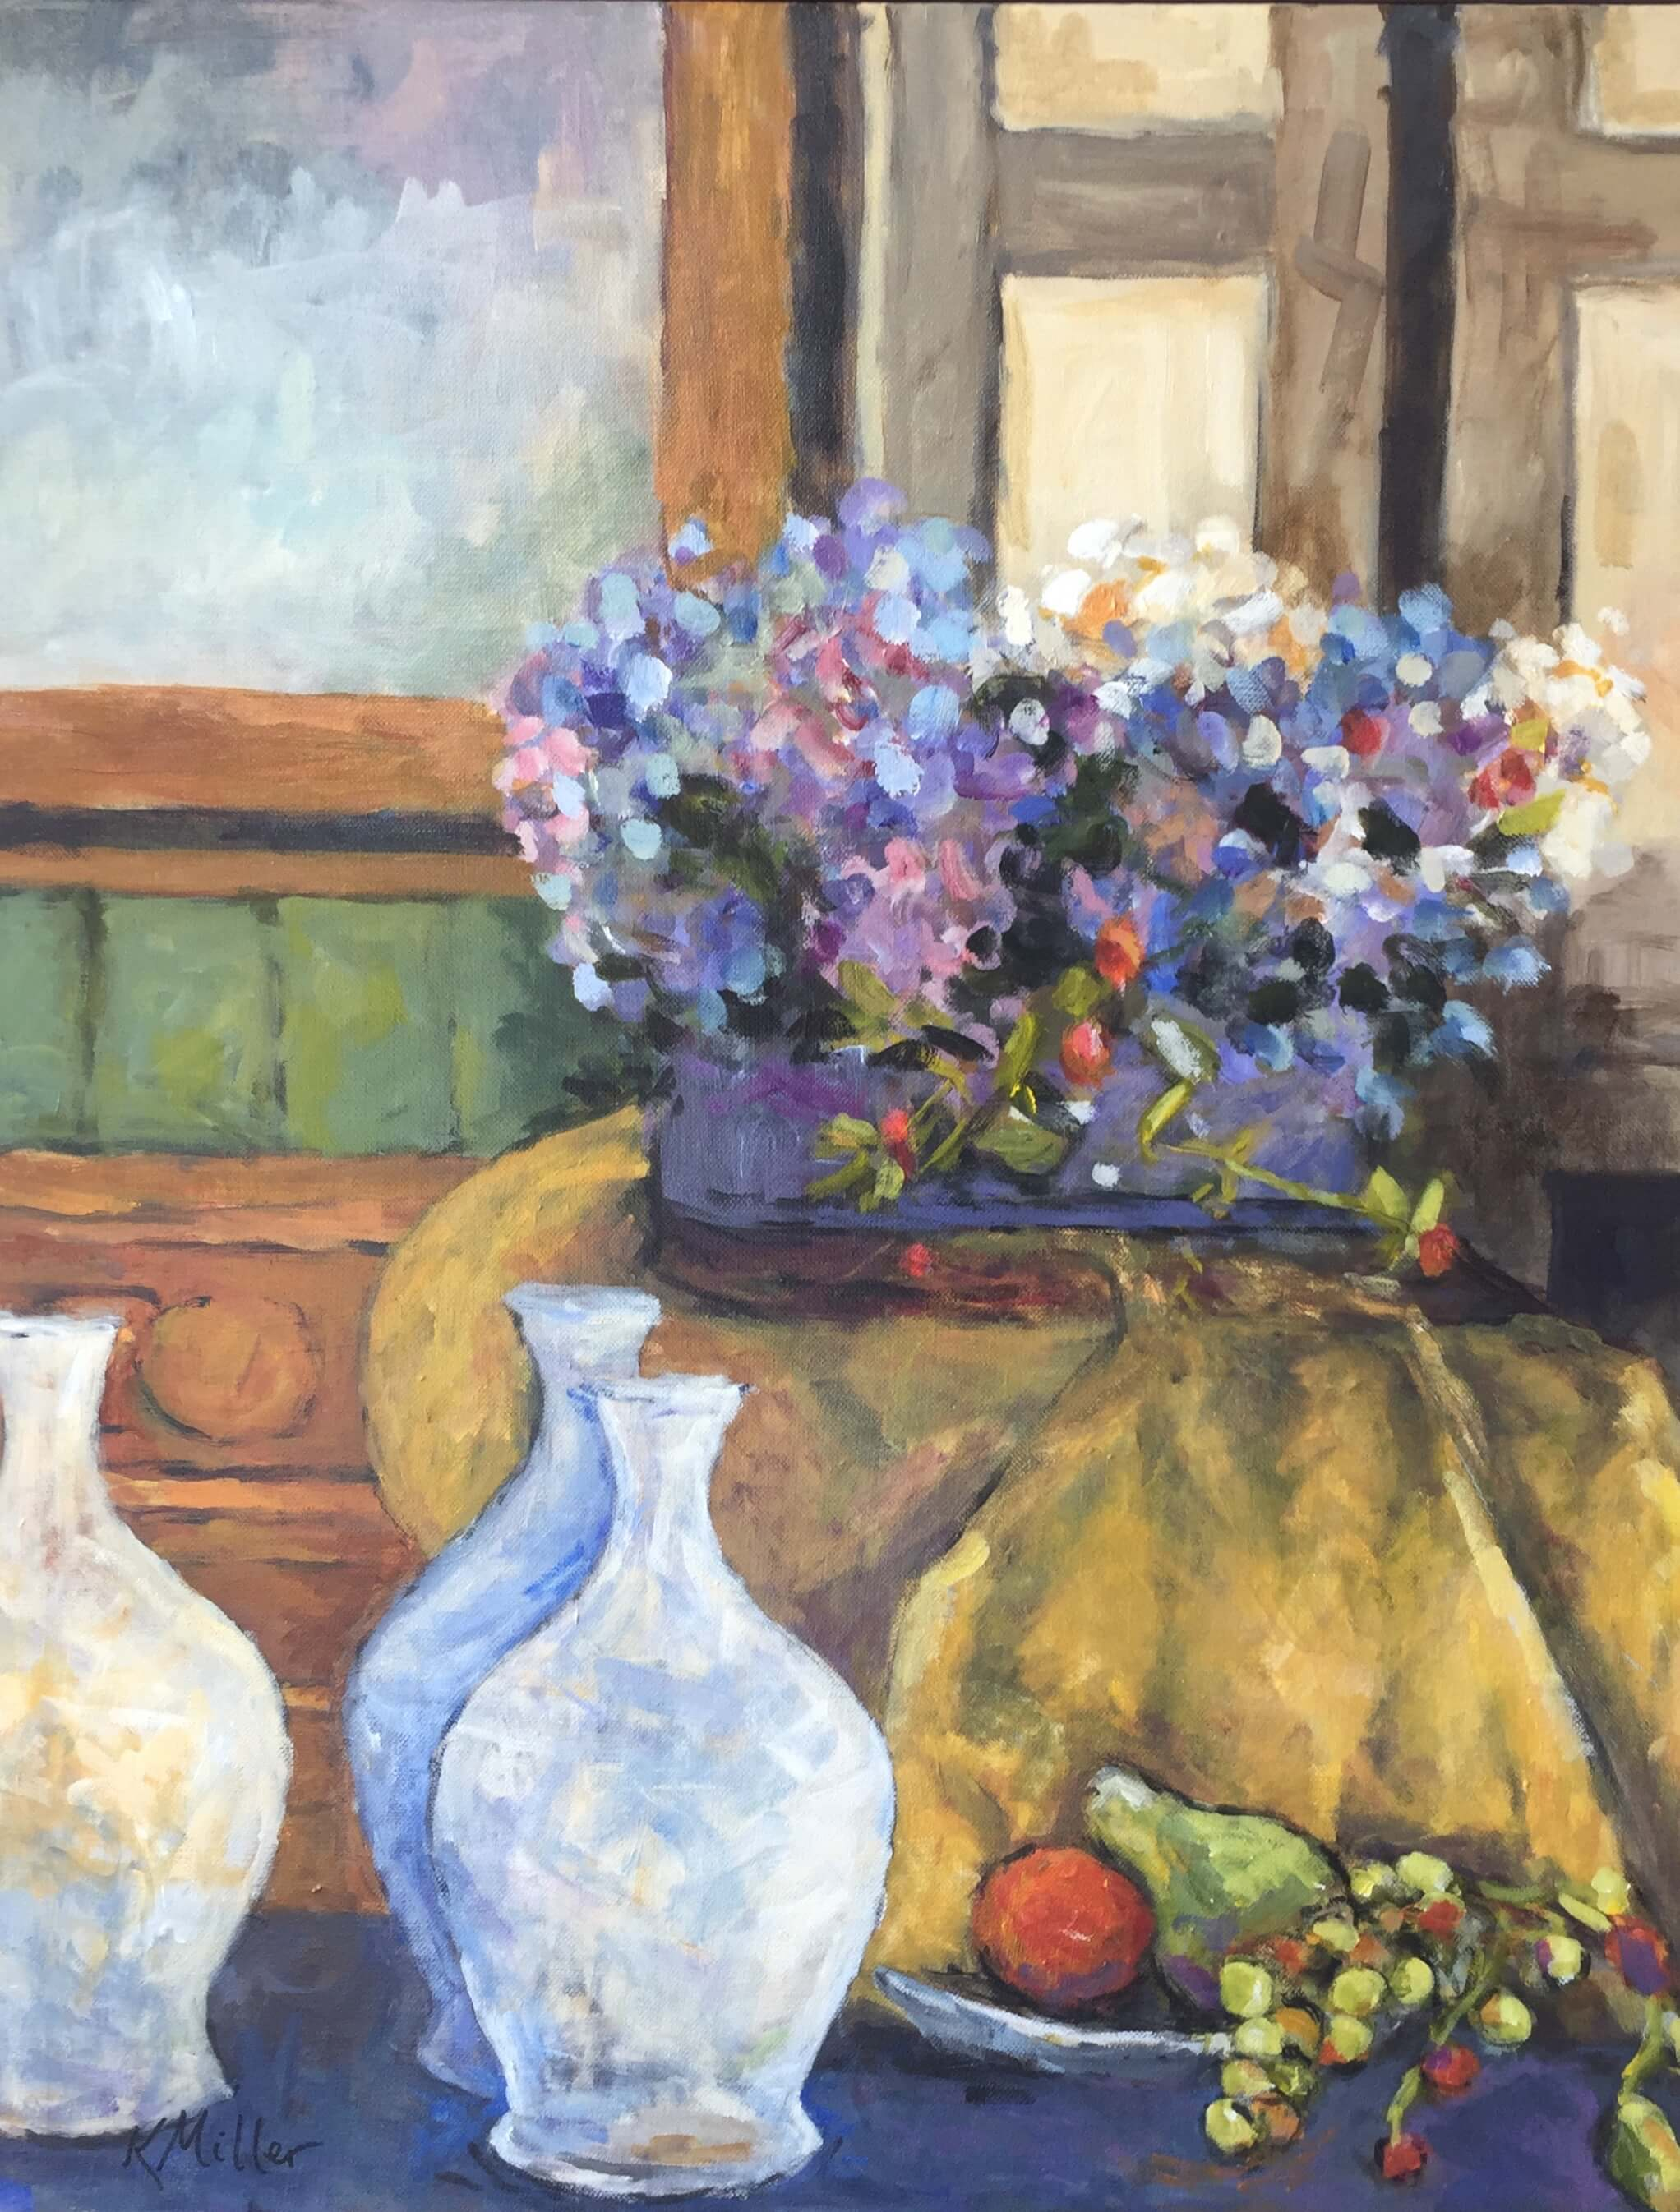 Hydrangeas With Bottles And Fruit Original Painting by Kathy Miller